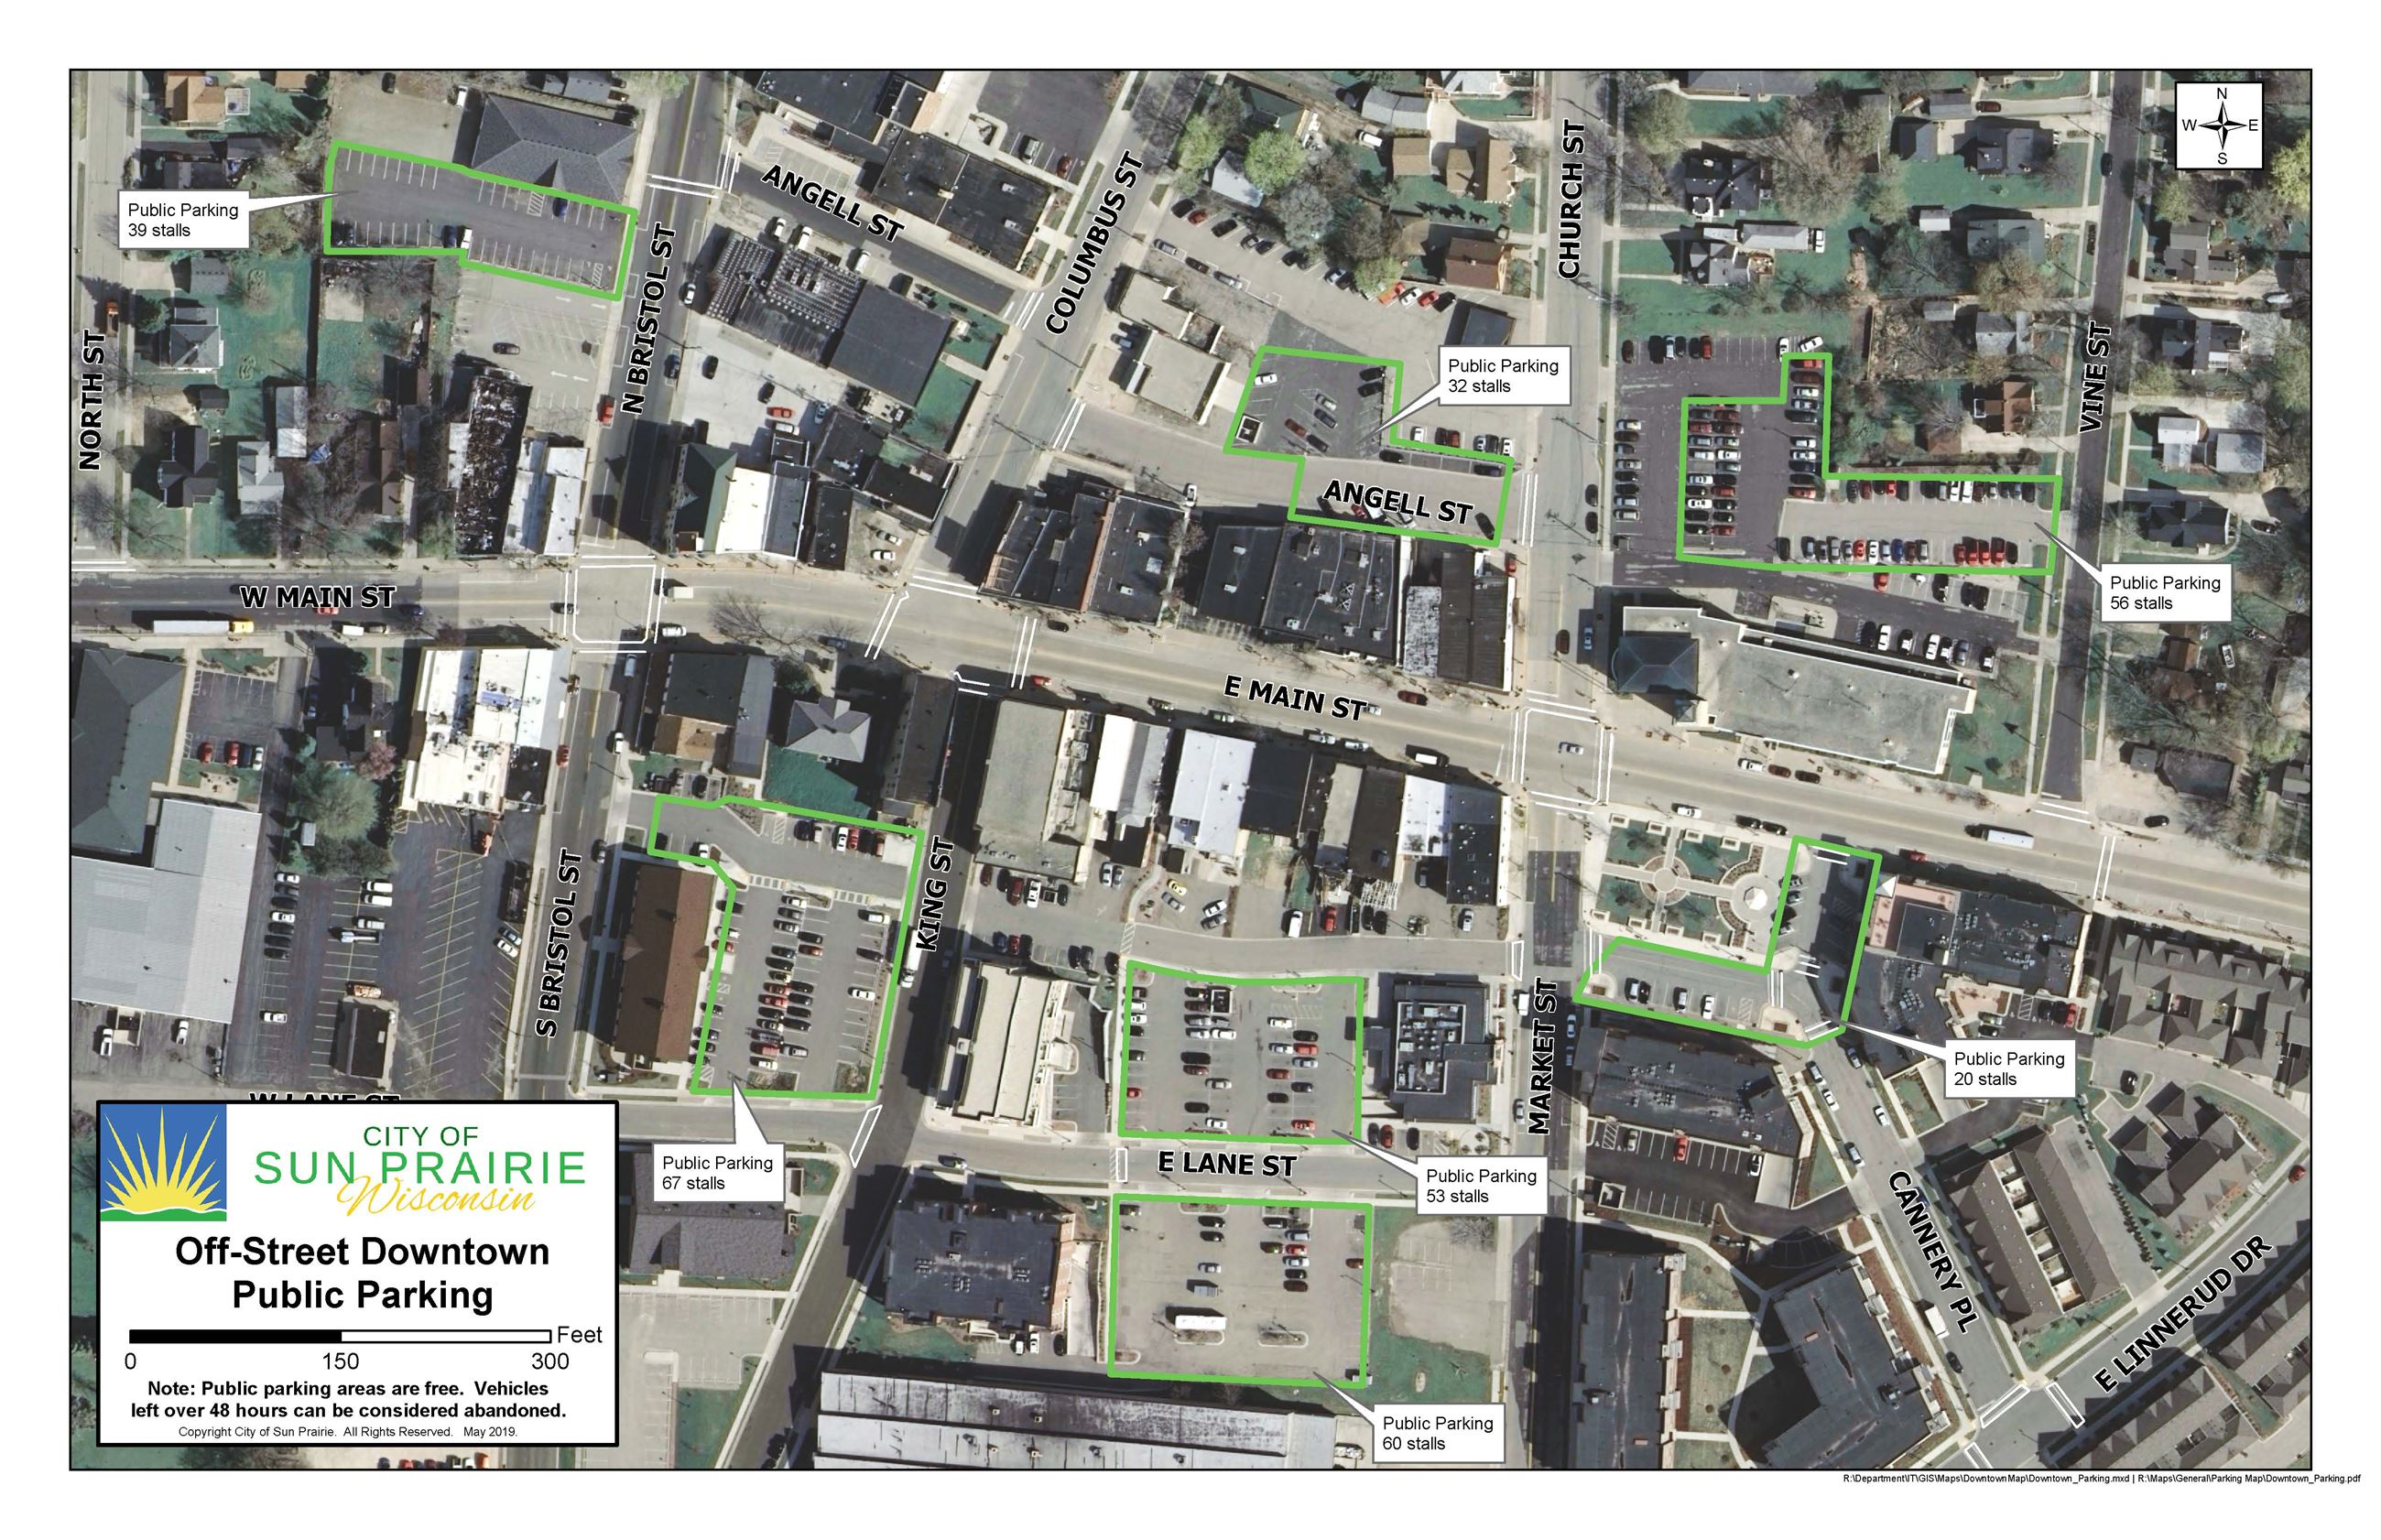 Downtown Sun Prairie Public Parking Lots updated 5.10.18